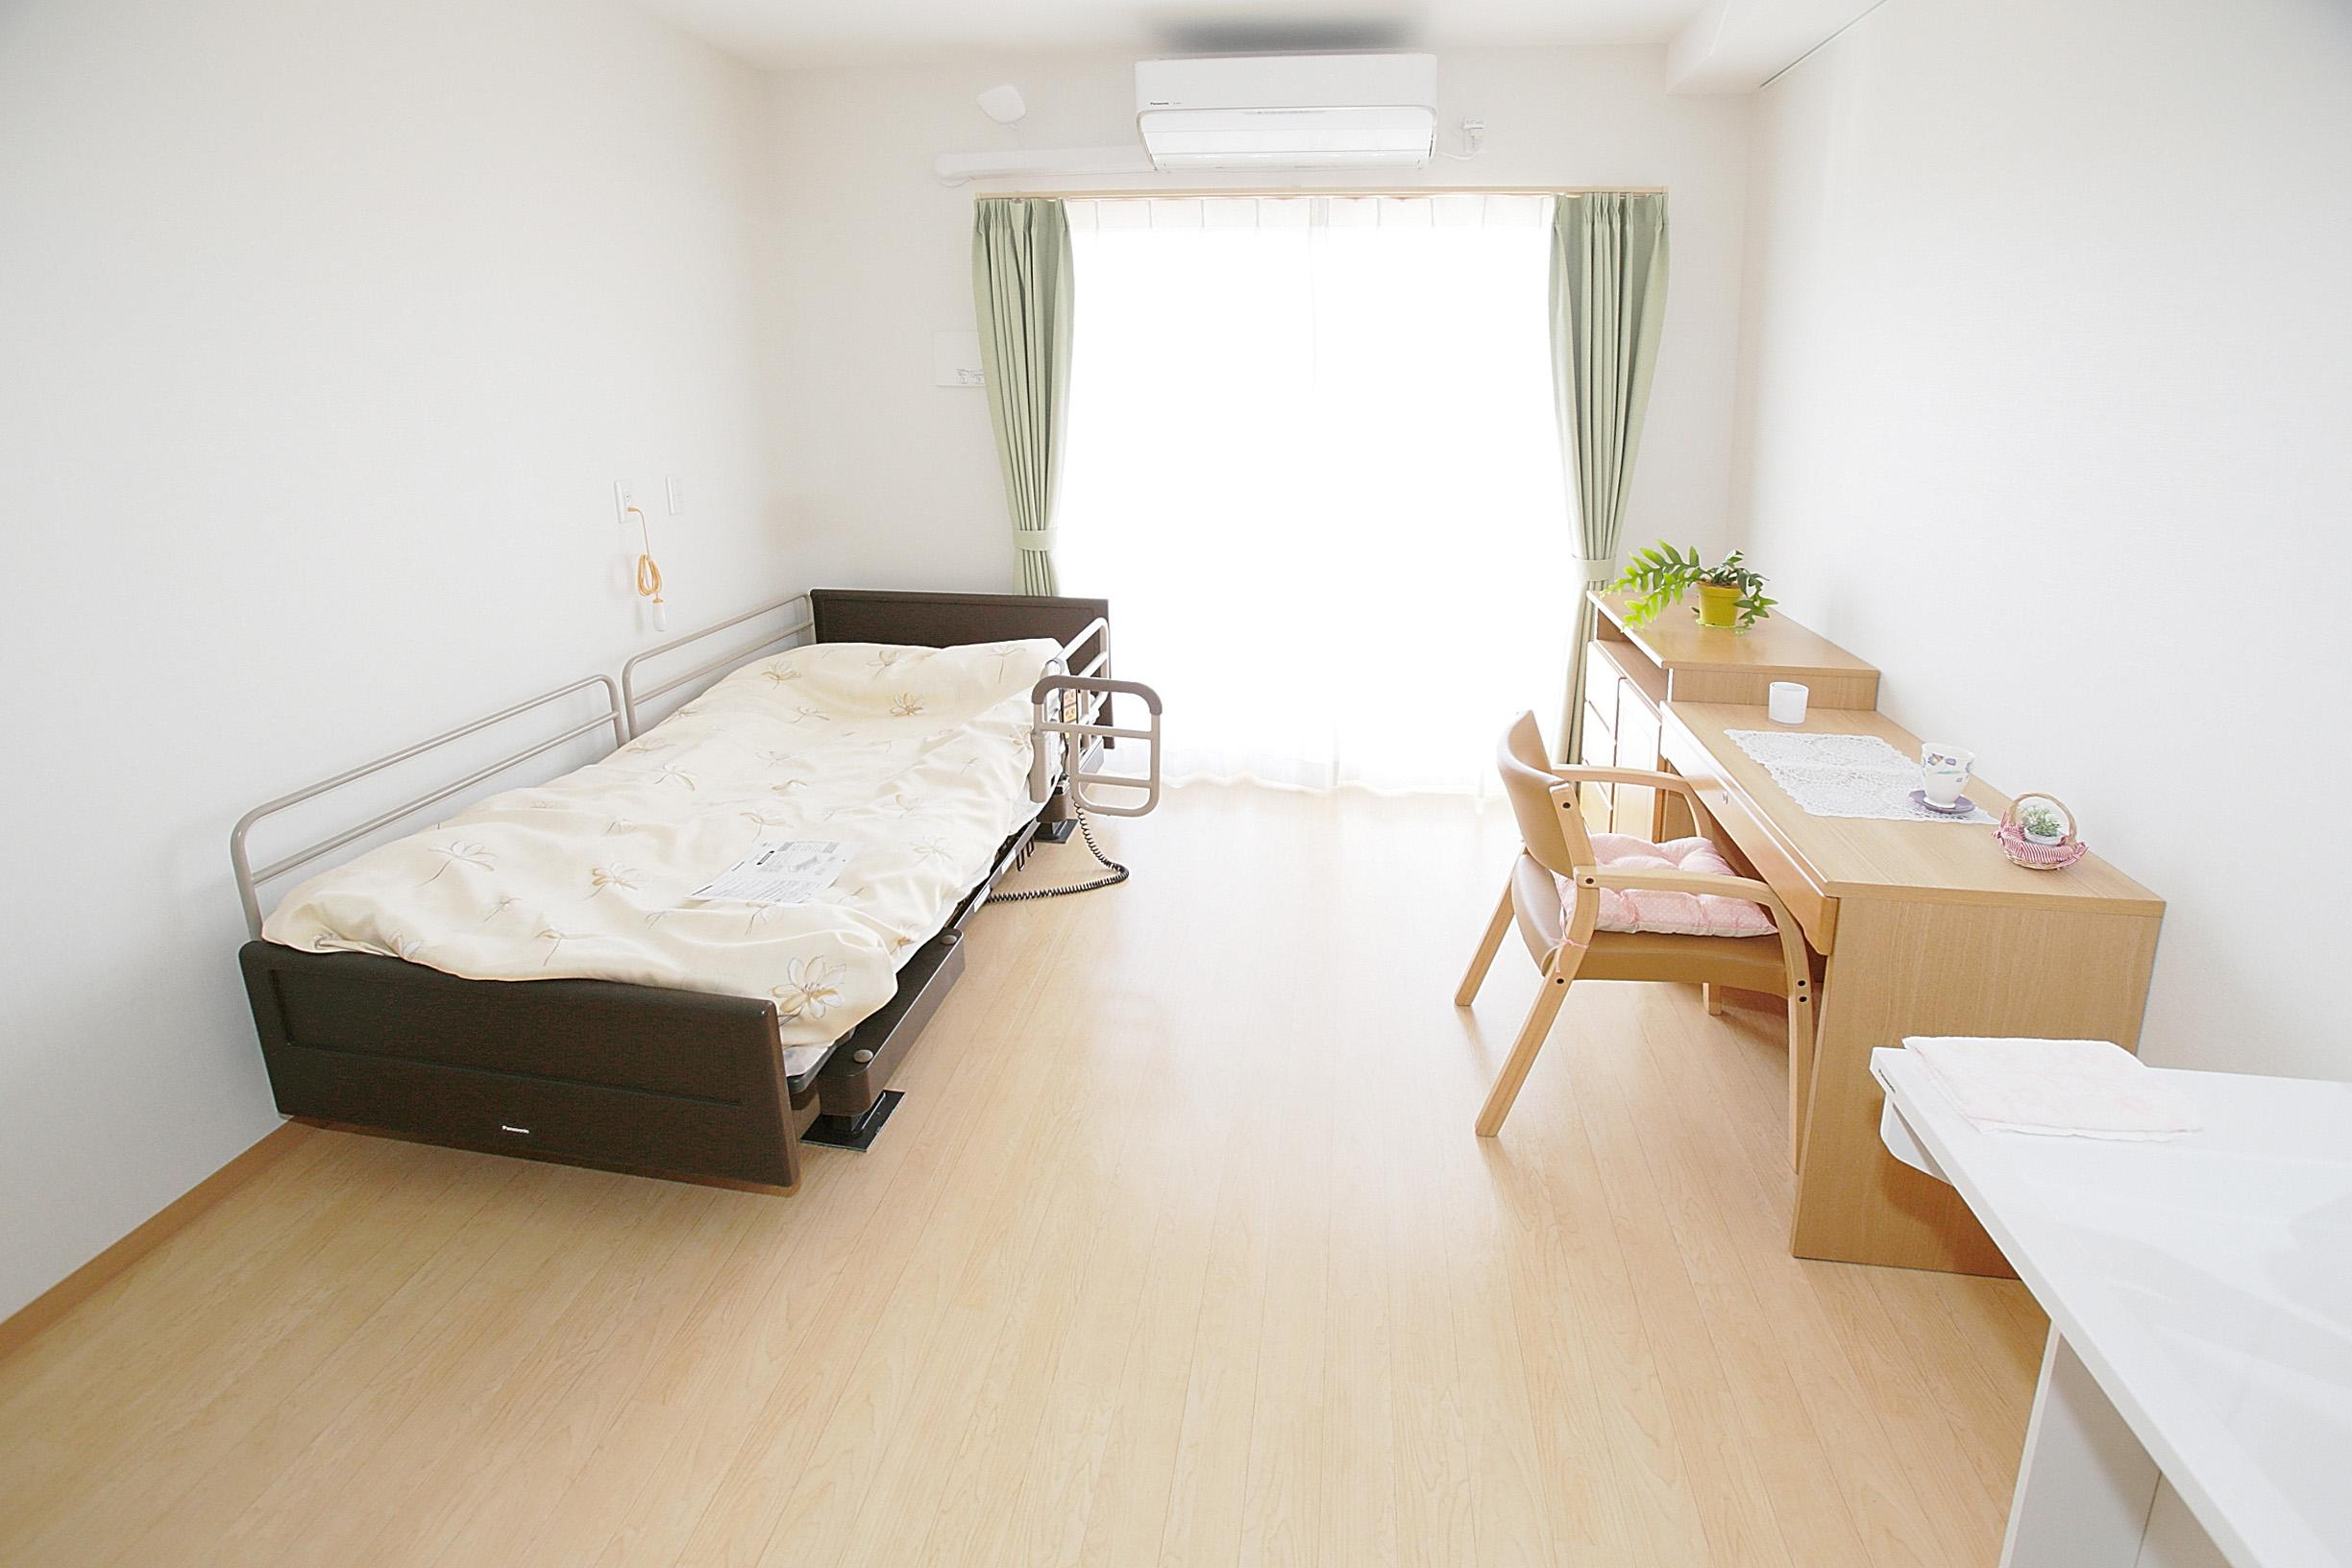 Photo: Room in an assisted-living facility outfitted with an AC Monitoring System